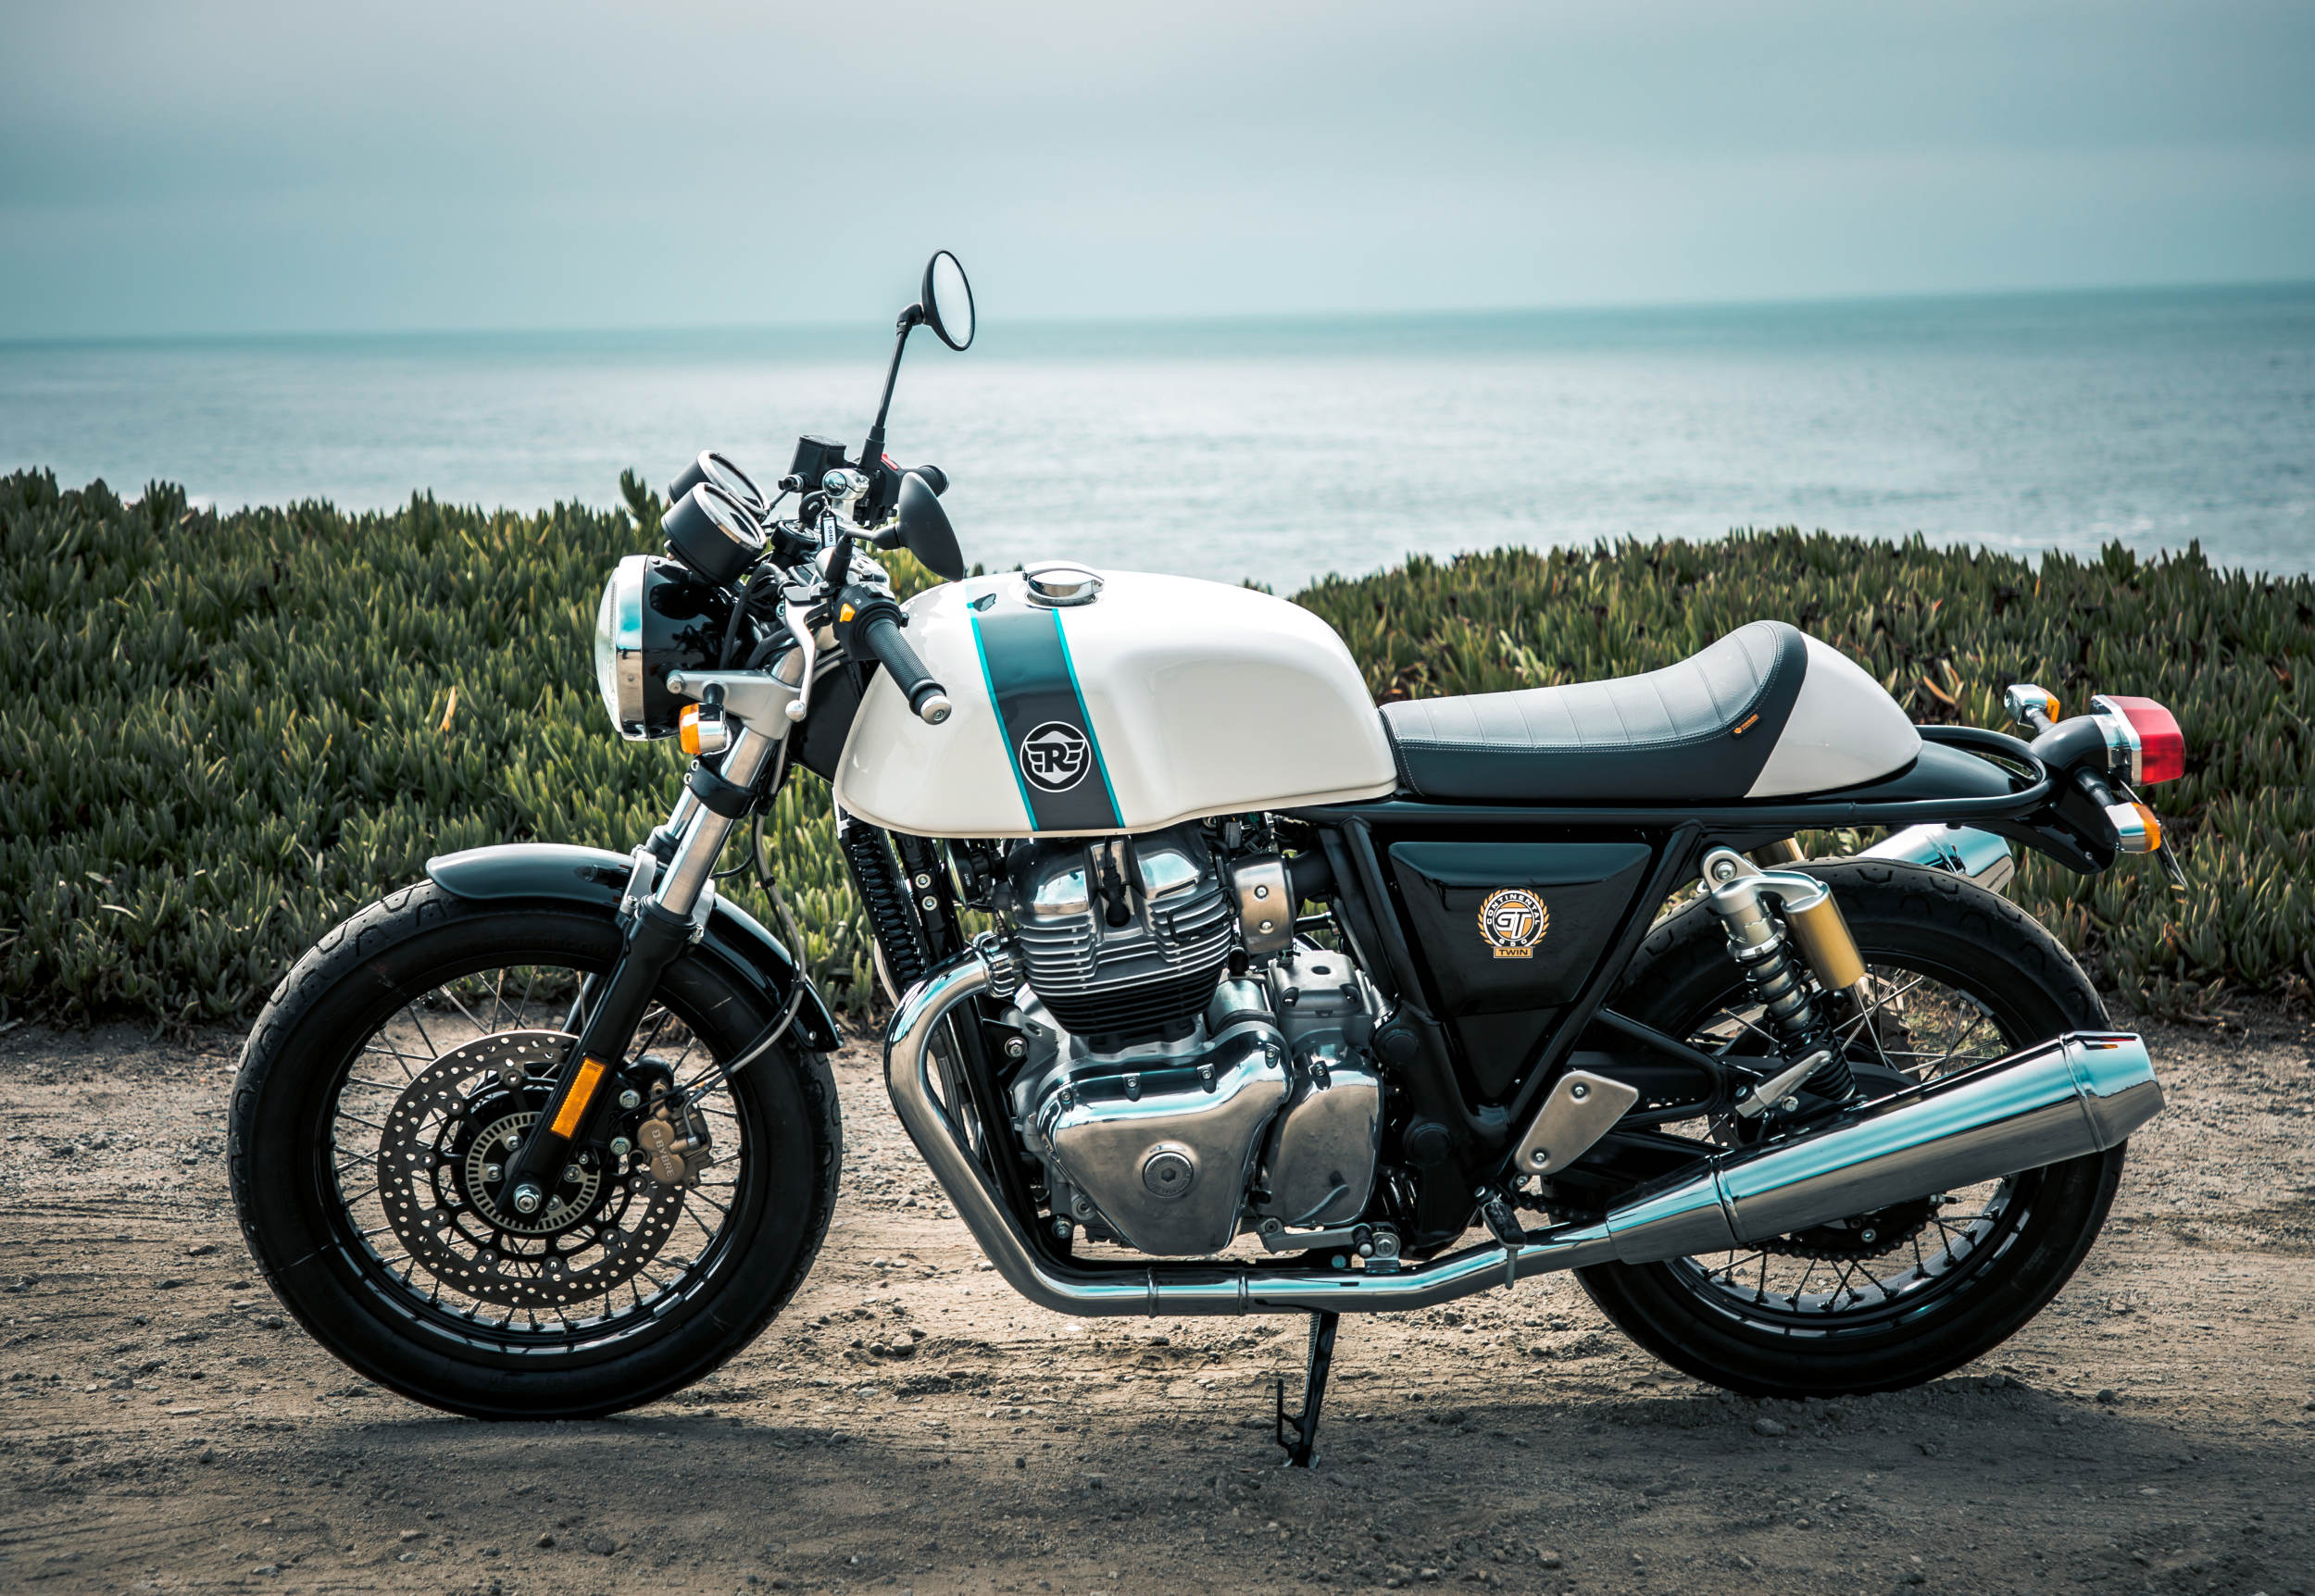 Royal Enfield 650 Models Announced With North American Pricing And